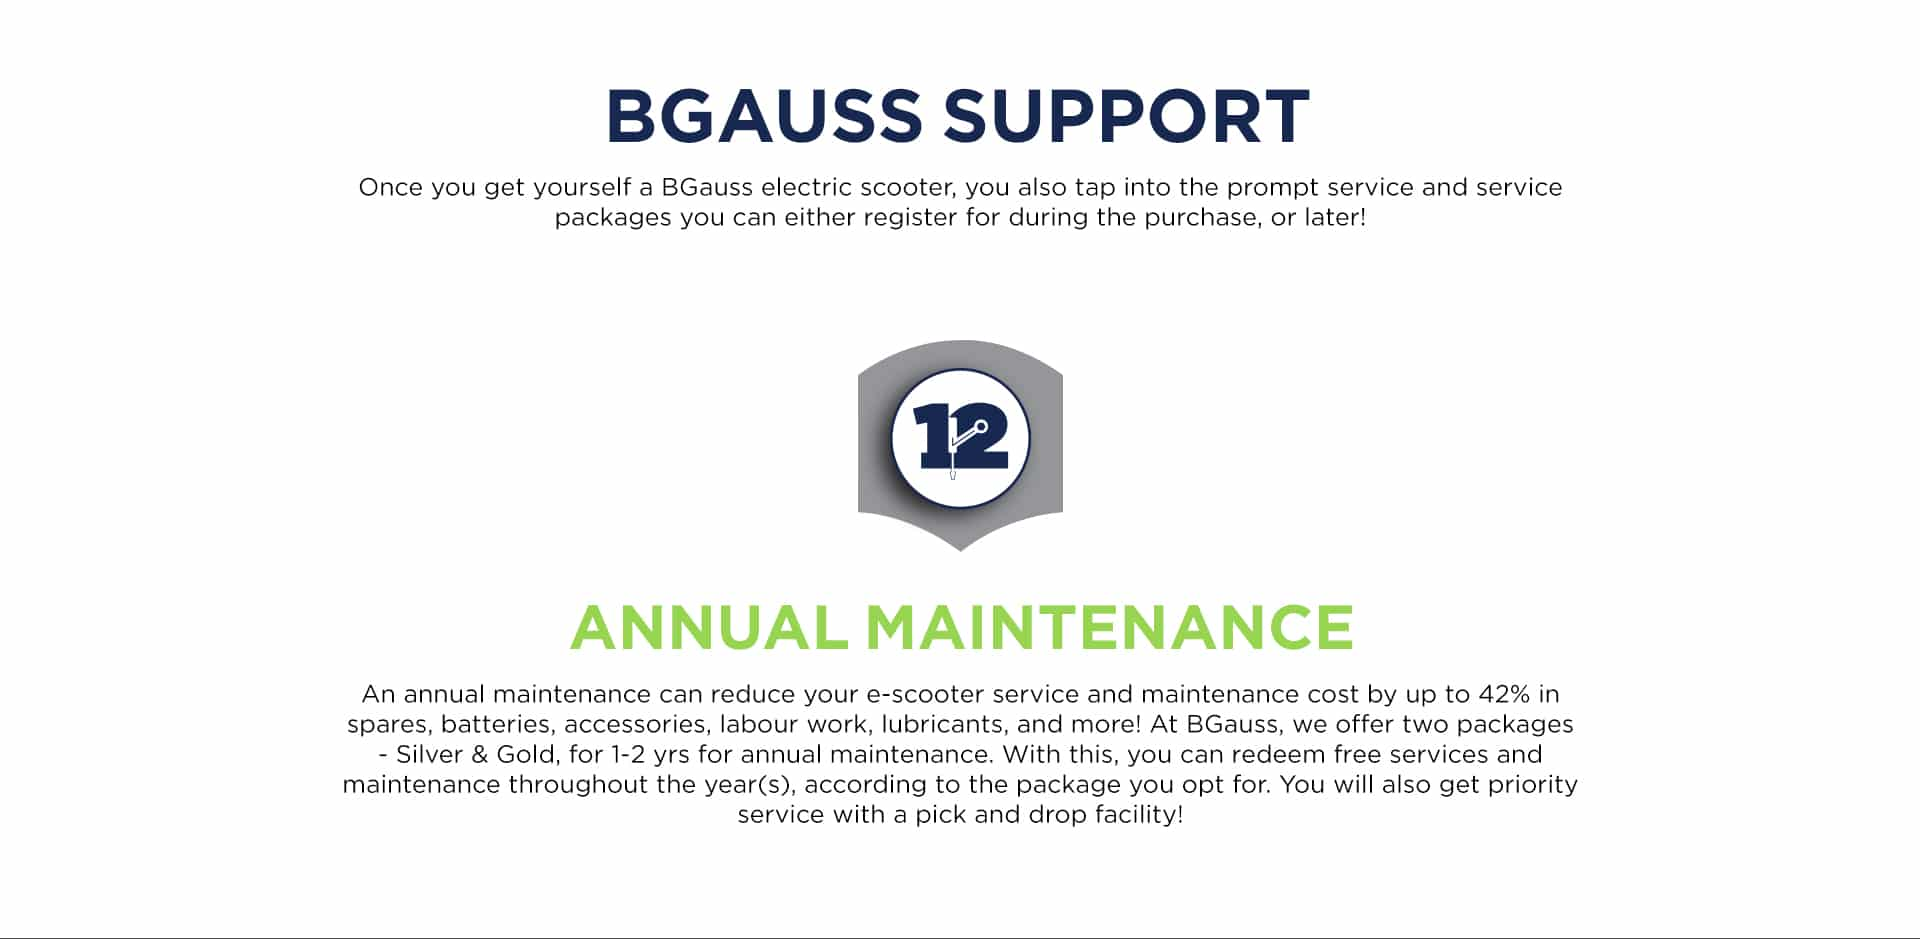 BGauss electric scooter App Support